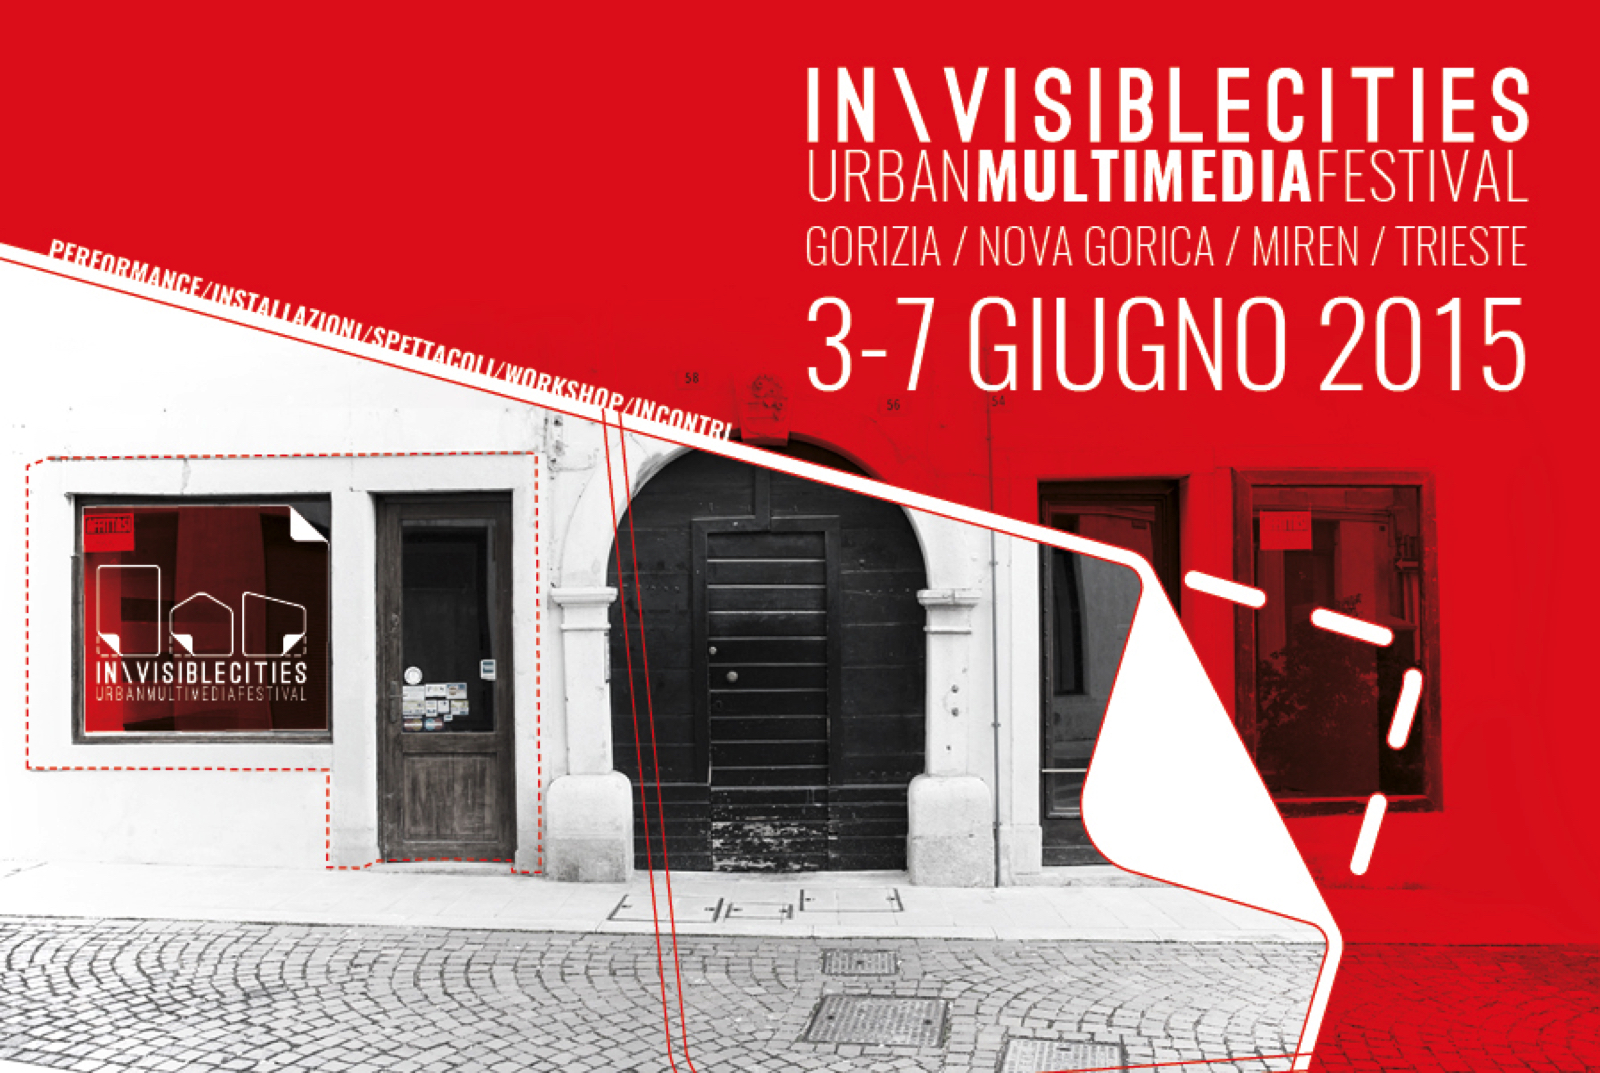 In\Visible Cities Urban Multimedia Festival